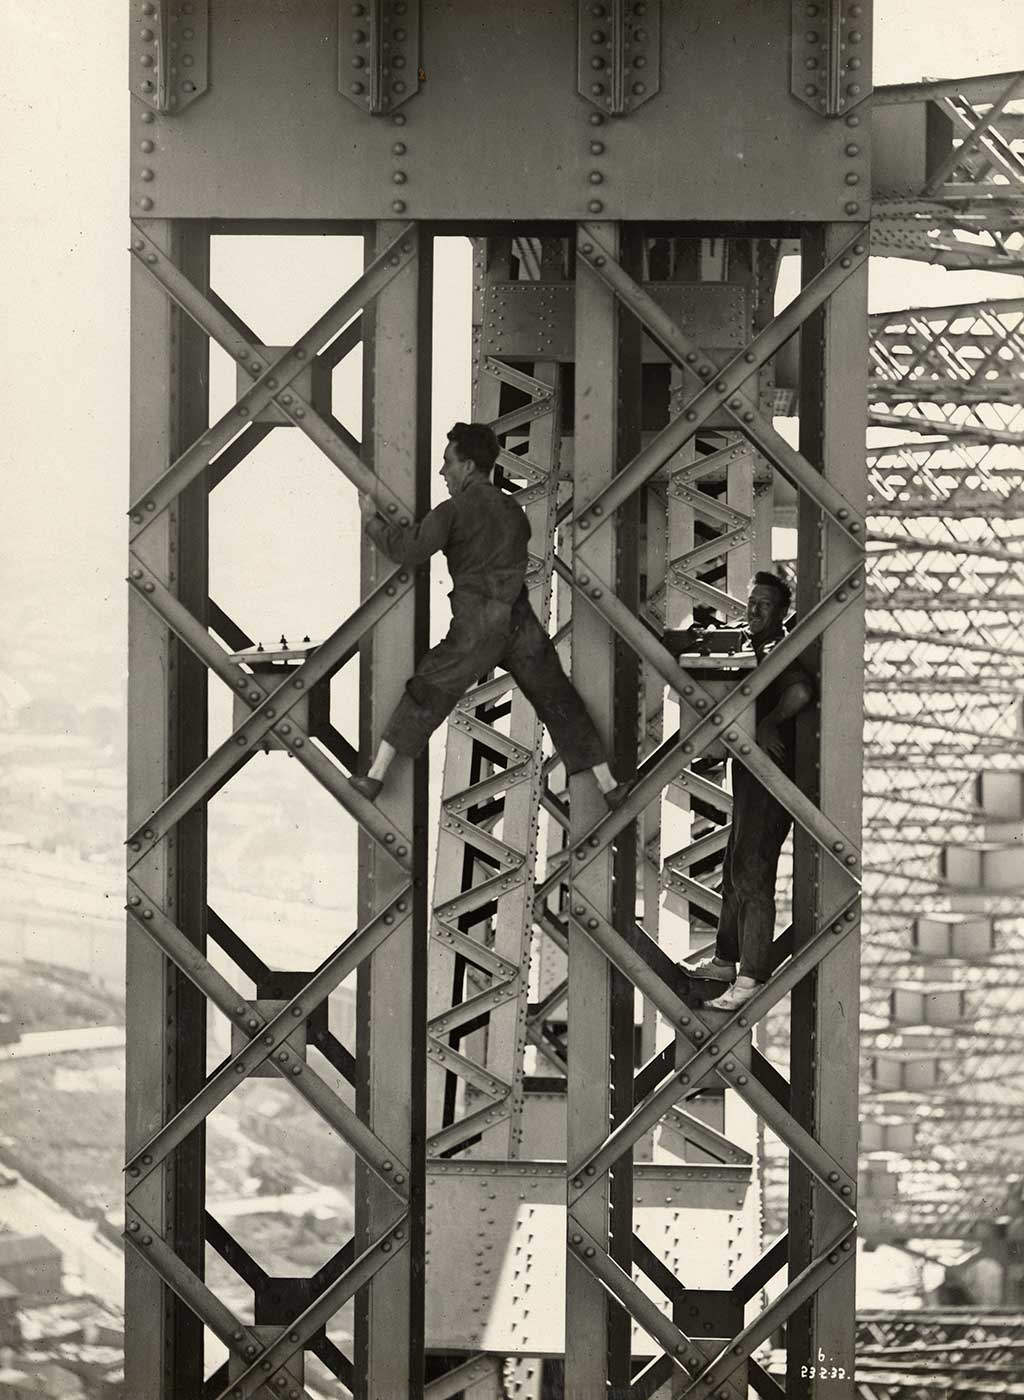 A man stands astride two sections of metal bridgework. He wars overalls and shoes without socks. Another man stands smiling while resting on another section of bridge at right. - click to view larger image